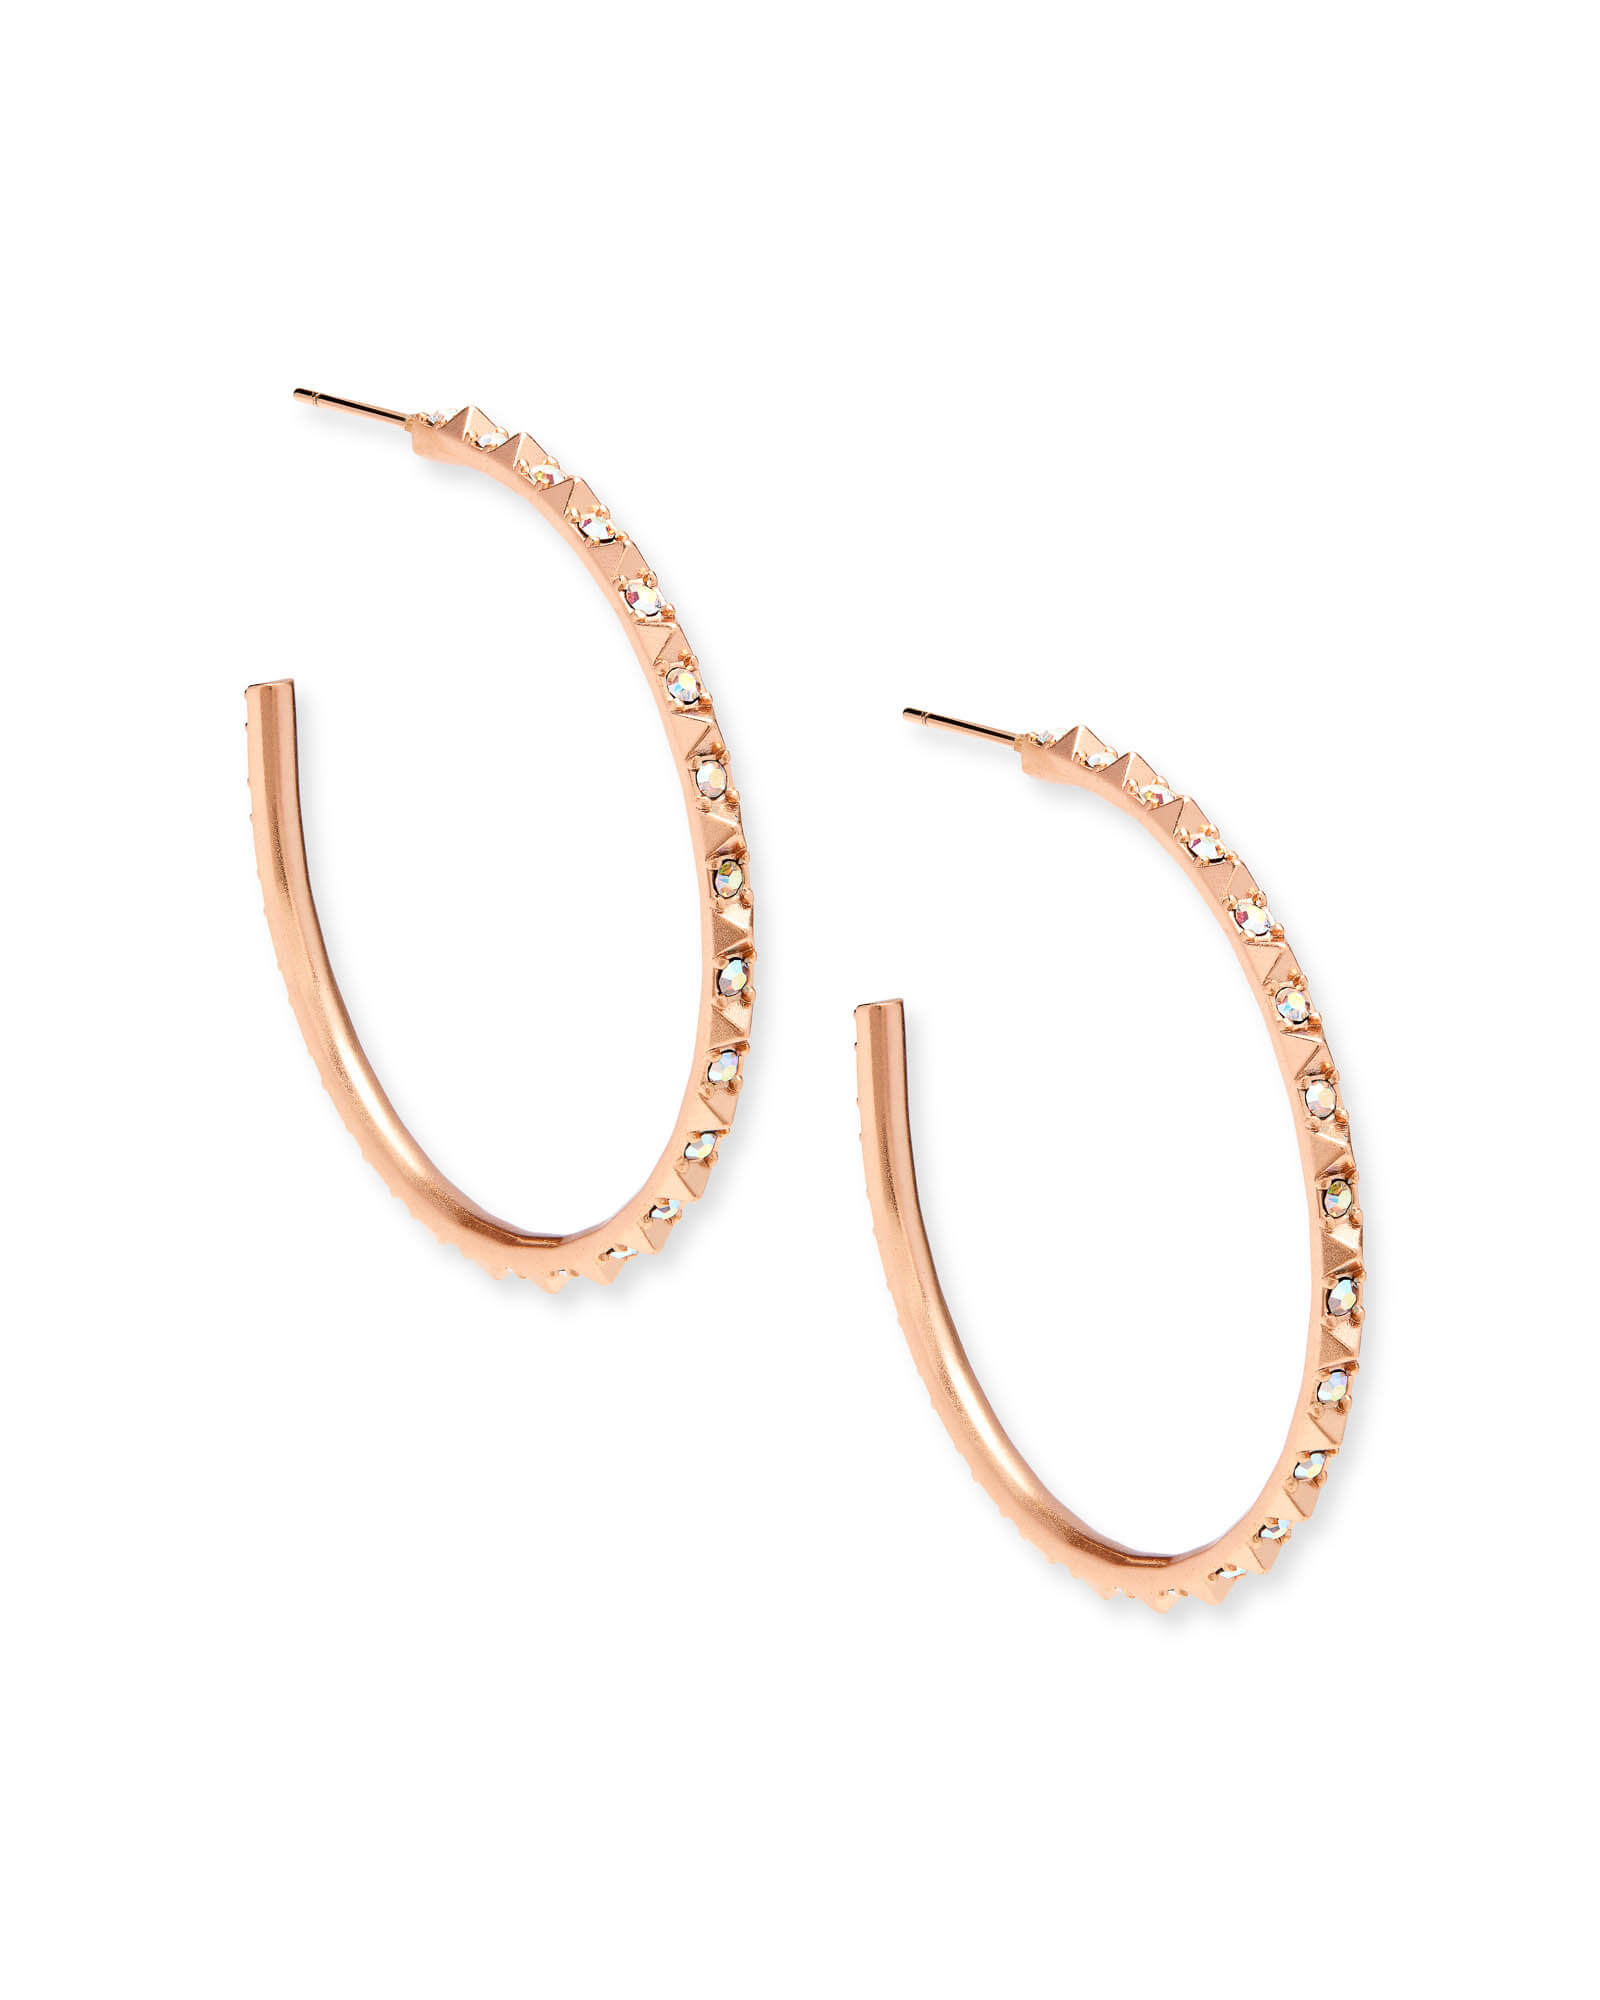 Veronica Hoop Earrings in Rose Gold